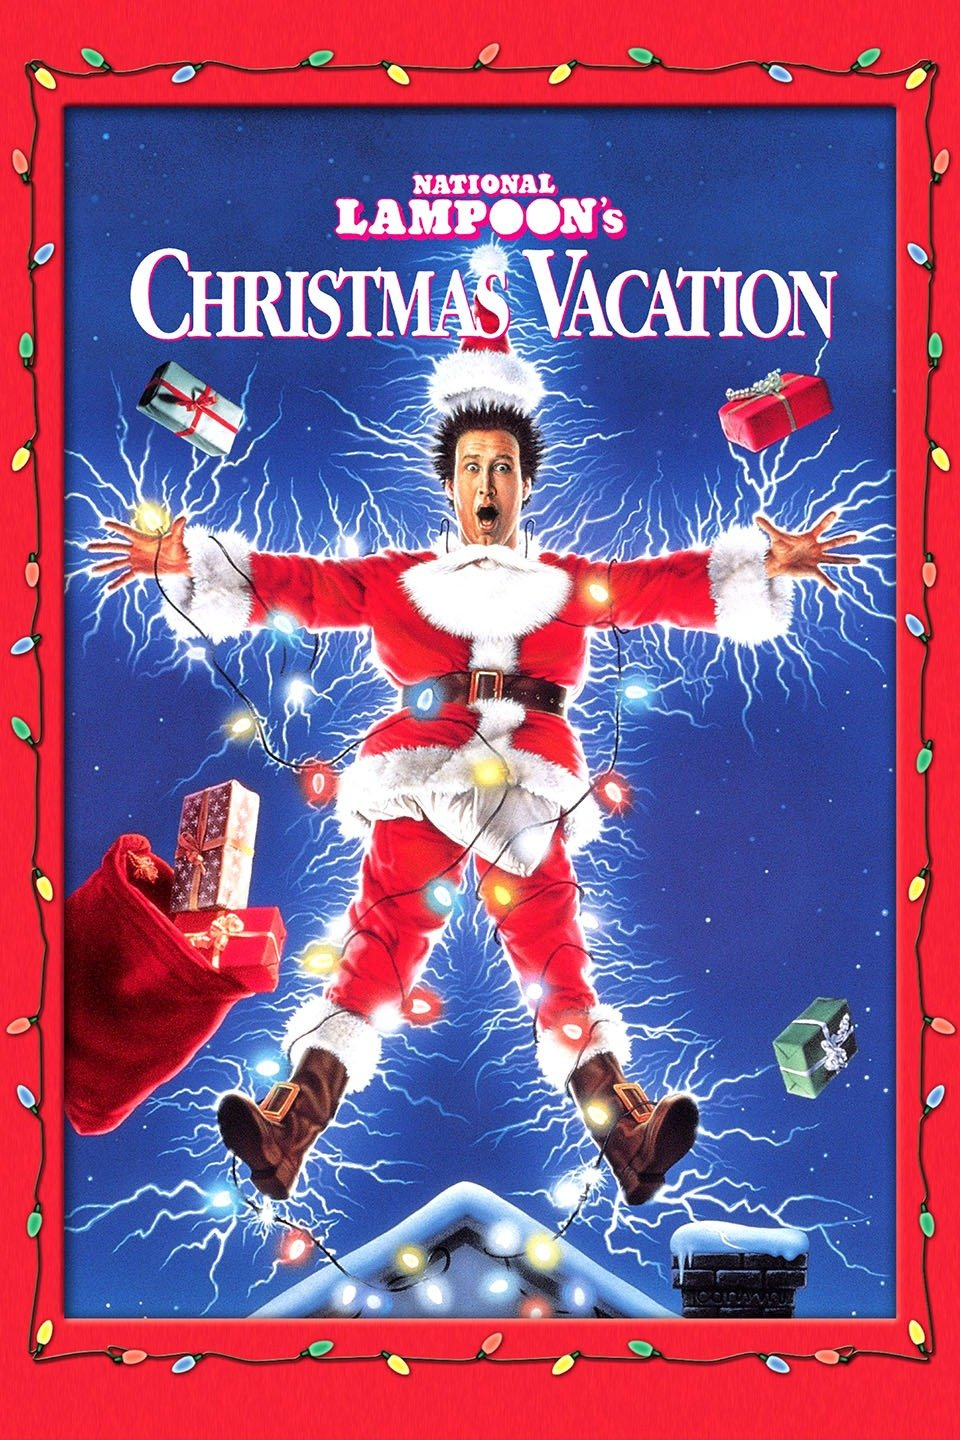 Christmas Vacation - If you're in need of some silly humor and holiday fun, this is the movie. And it's a fun reminder that try as hard as we do, the best Christmas plans will go awry. So go with it. Besides who hasn't watched this movie and not been inspired to totally Griswold the house with a million blinking lights?